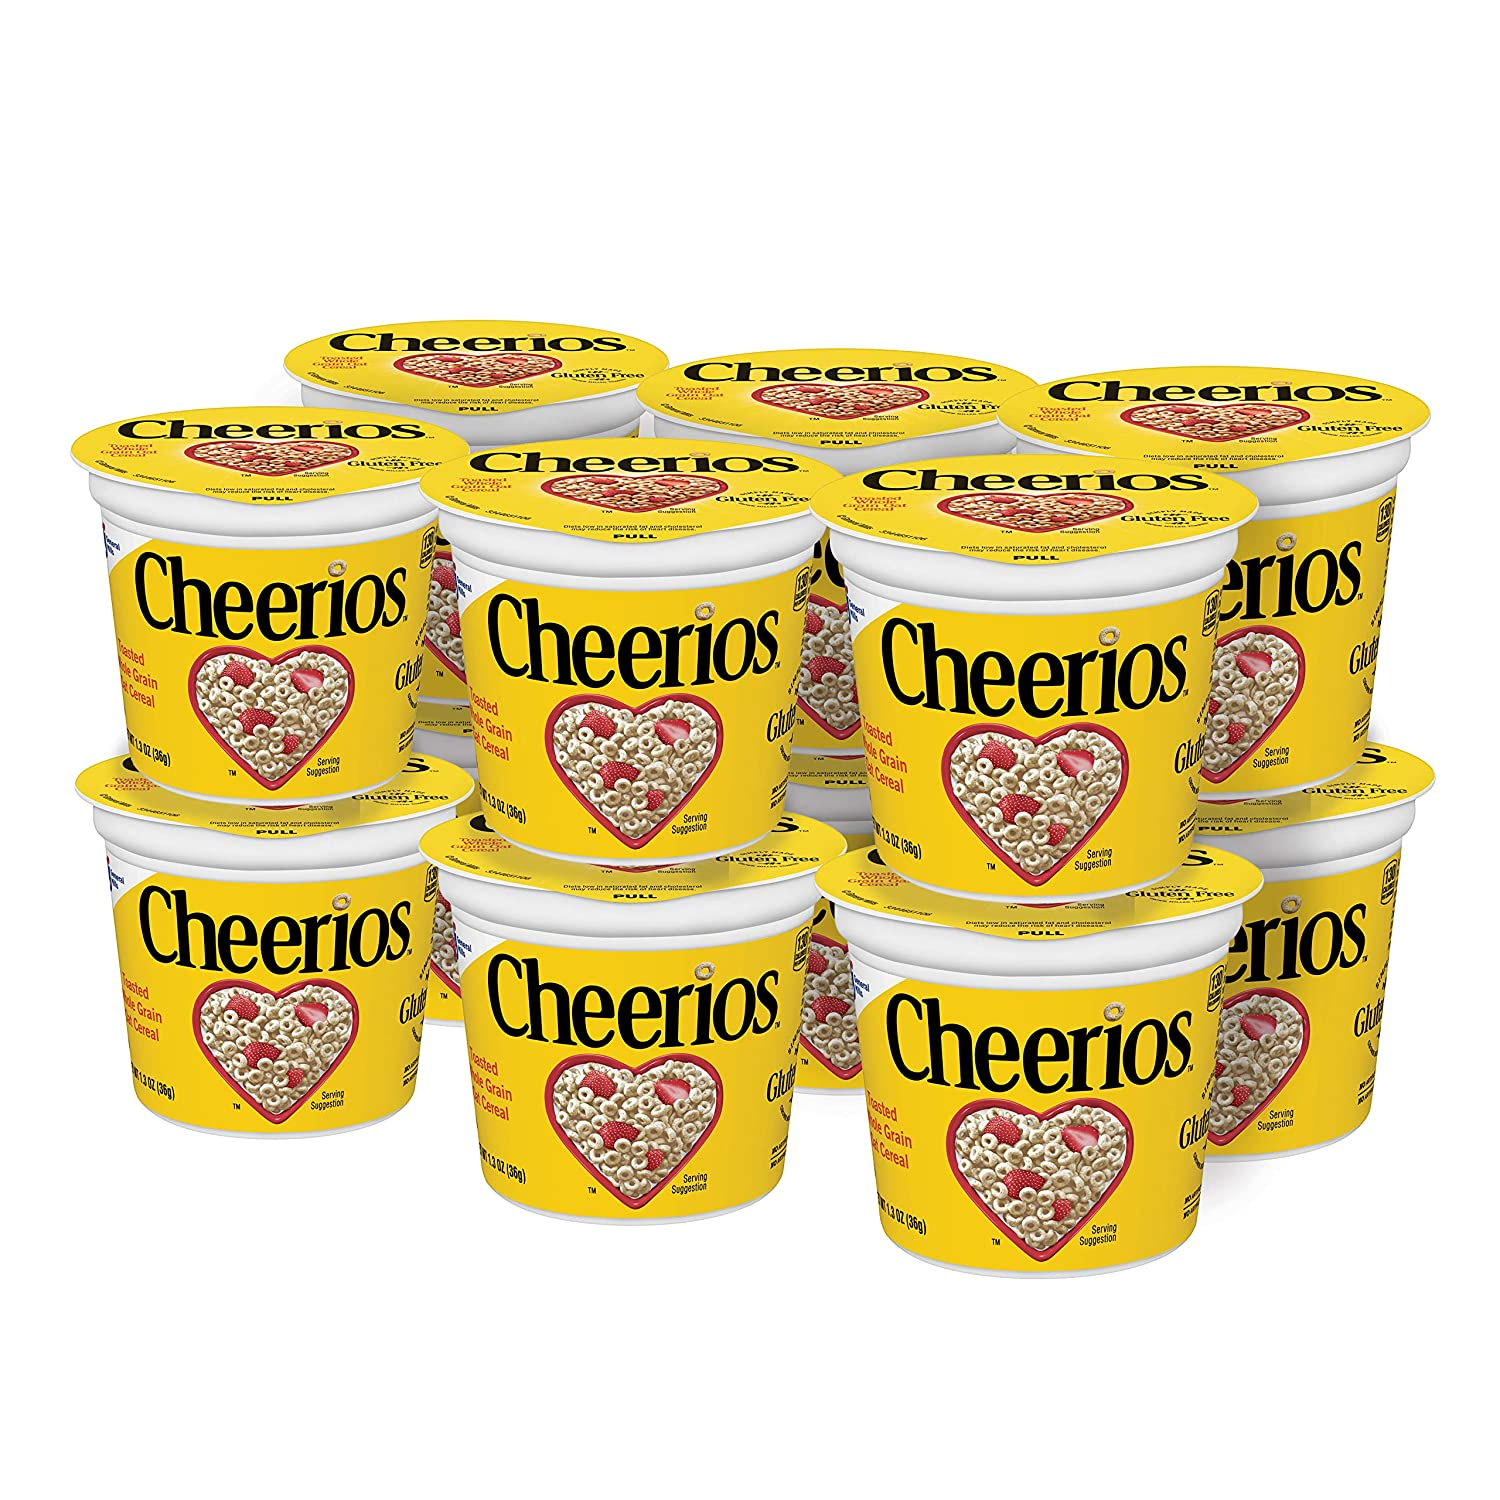 Cheerios Breakfast Cereal Cup, Toasted Whole Grain Oat Cereal, 1.3 oz Cup (Pack of 12)